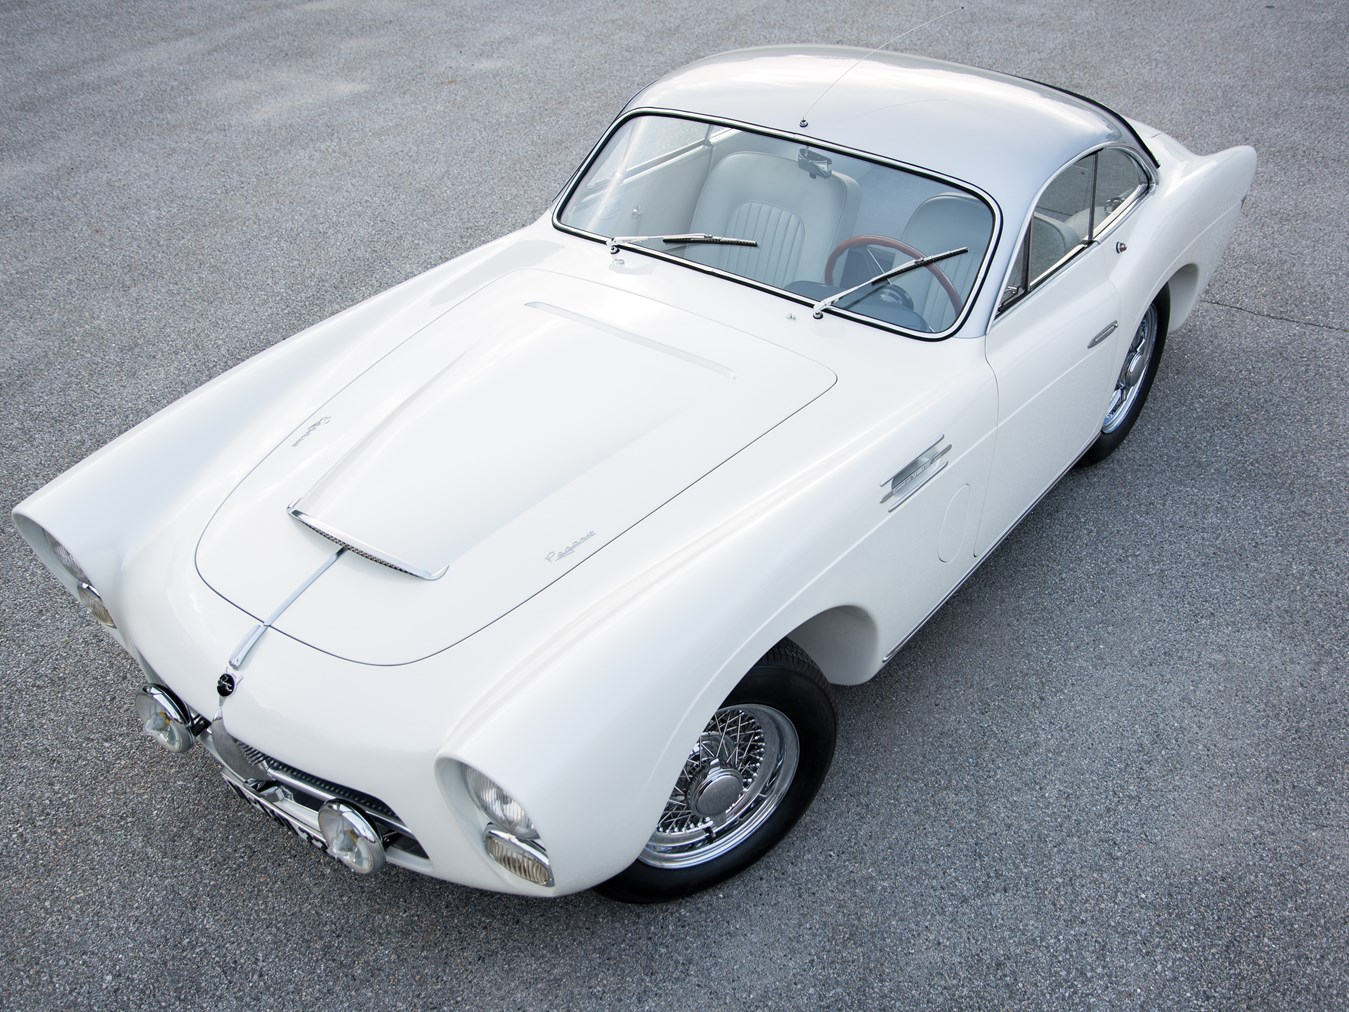 The Pegaso is every bit a premium fifties sports car.